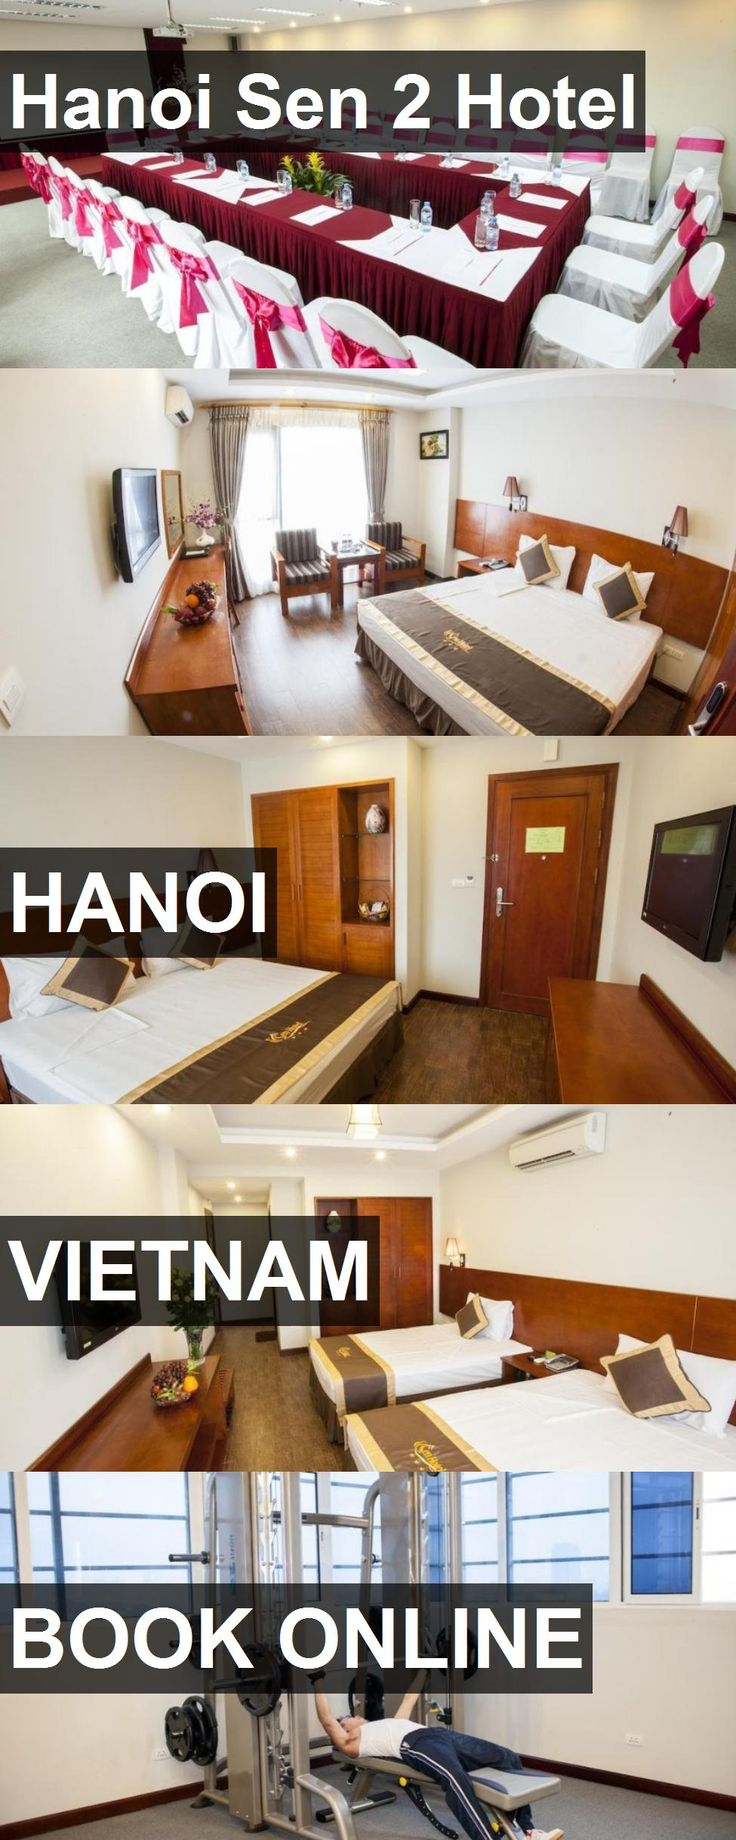 Hanoi Sen 2 Hotel in Hanoi, Vietnam. For more information, photos, reviews and best prices please follow the link. #Vietnam #Hanoi #travel #vacation #hotel